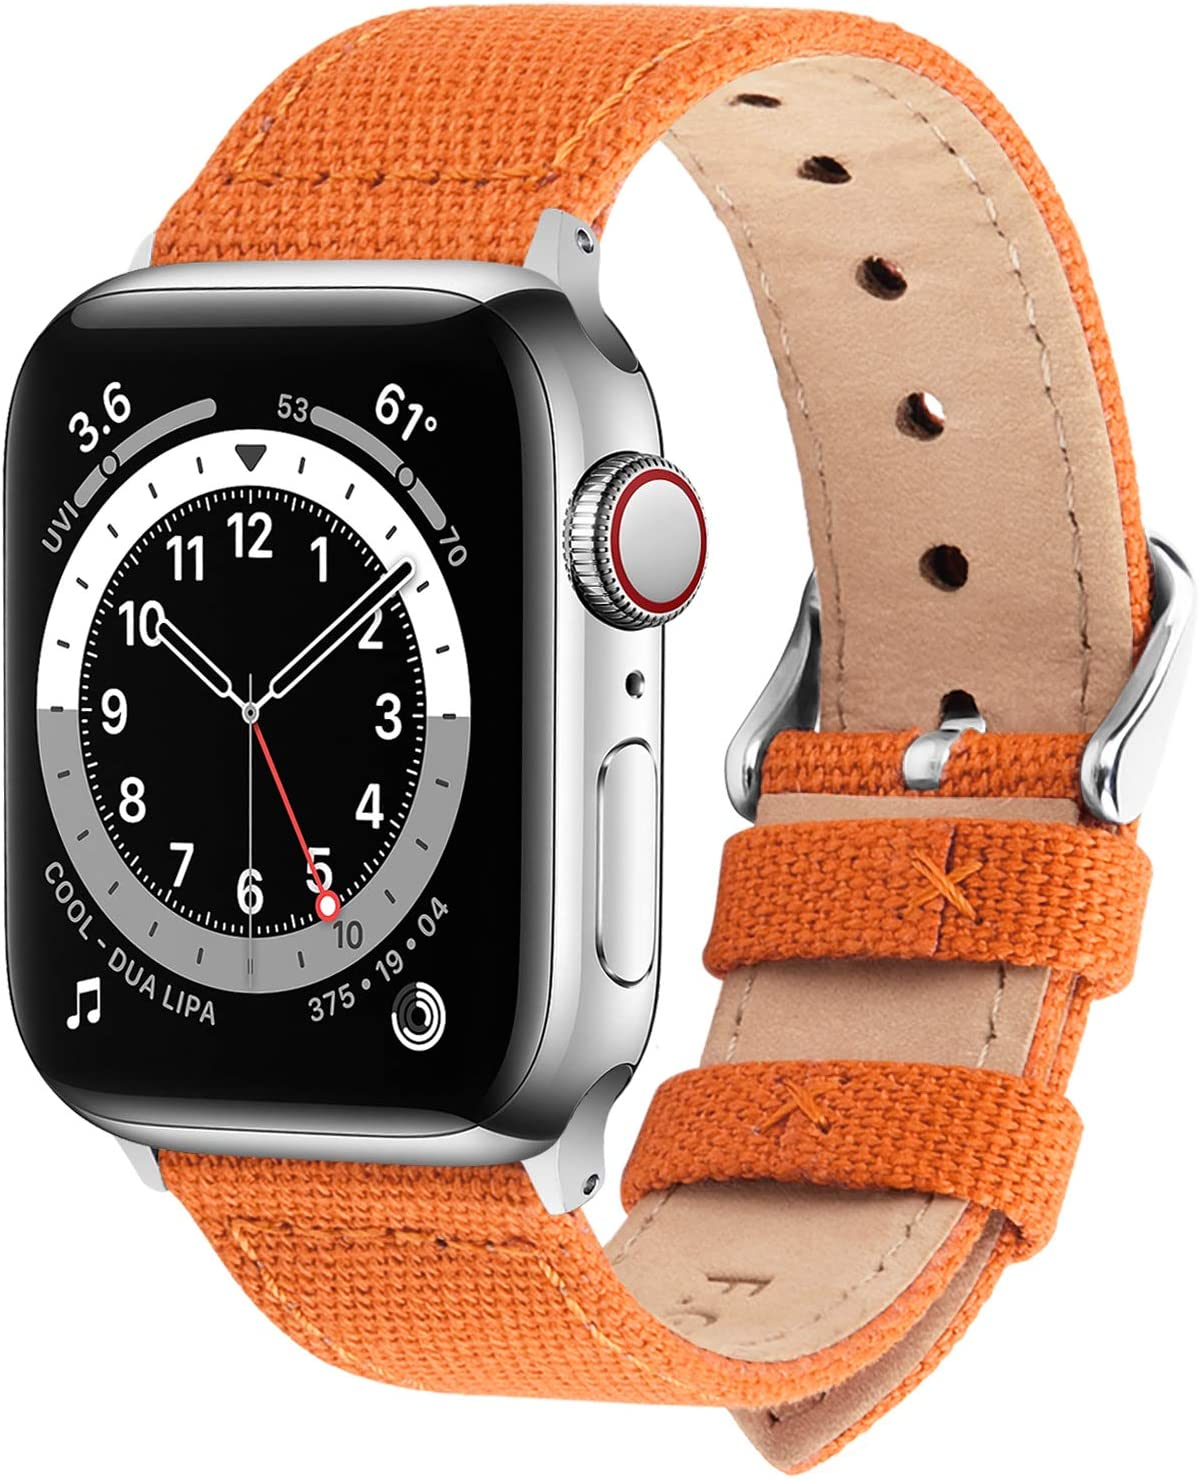 Fullmosa Compatible Apple Watch Band 38mm 40mm 42mm 44mm, 8 Colors Canvas Style for iWatch Strap Compatible with Apple Watch Series 4/5/6/SE (40mm) Series 3/2/1 (38mm),38mm 40mm Pumpkin Orange